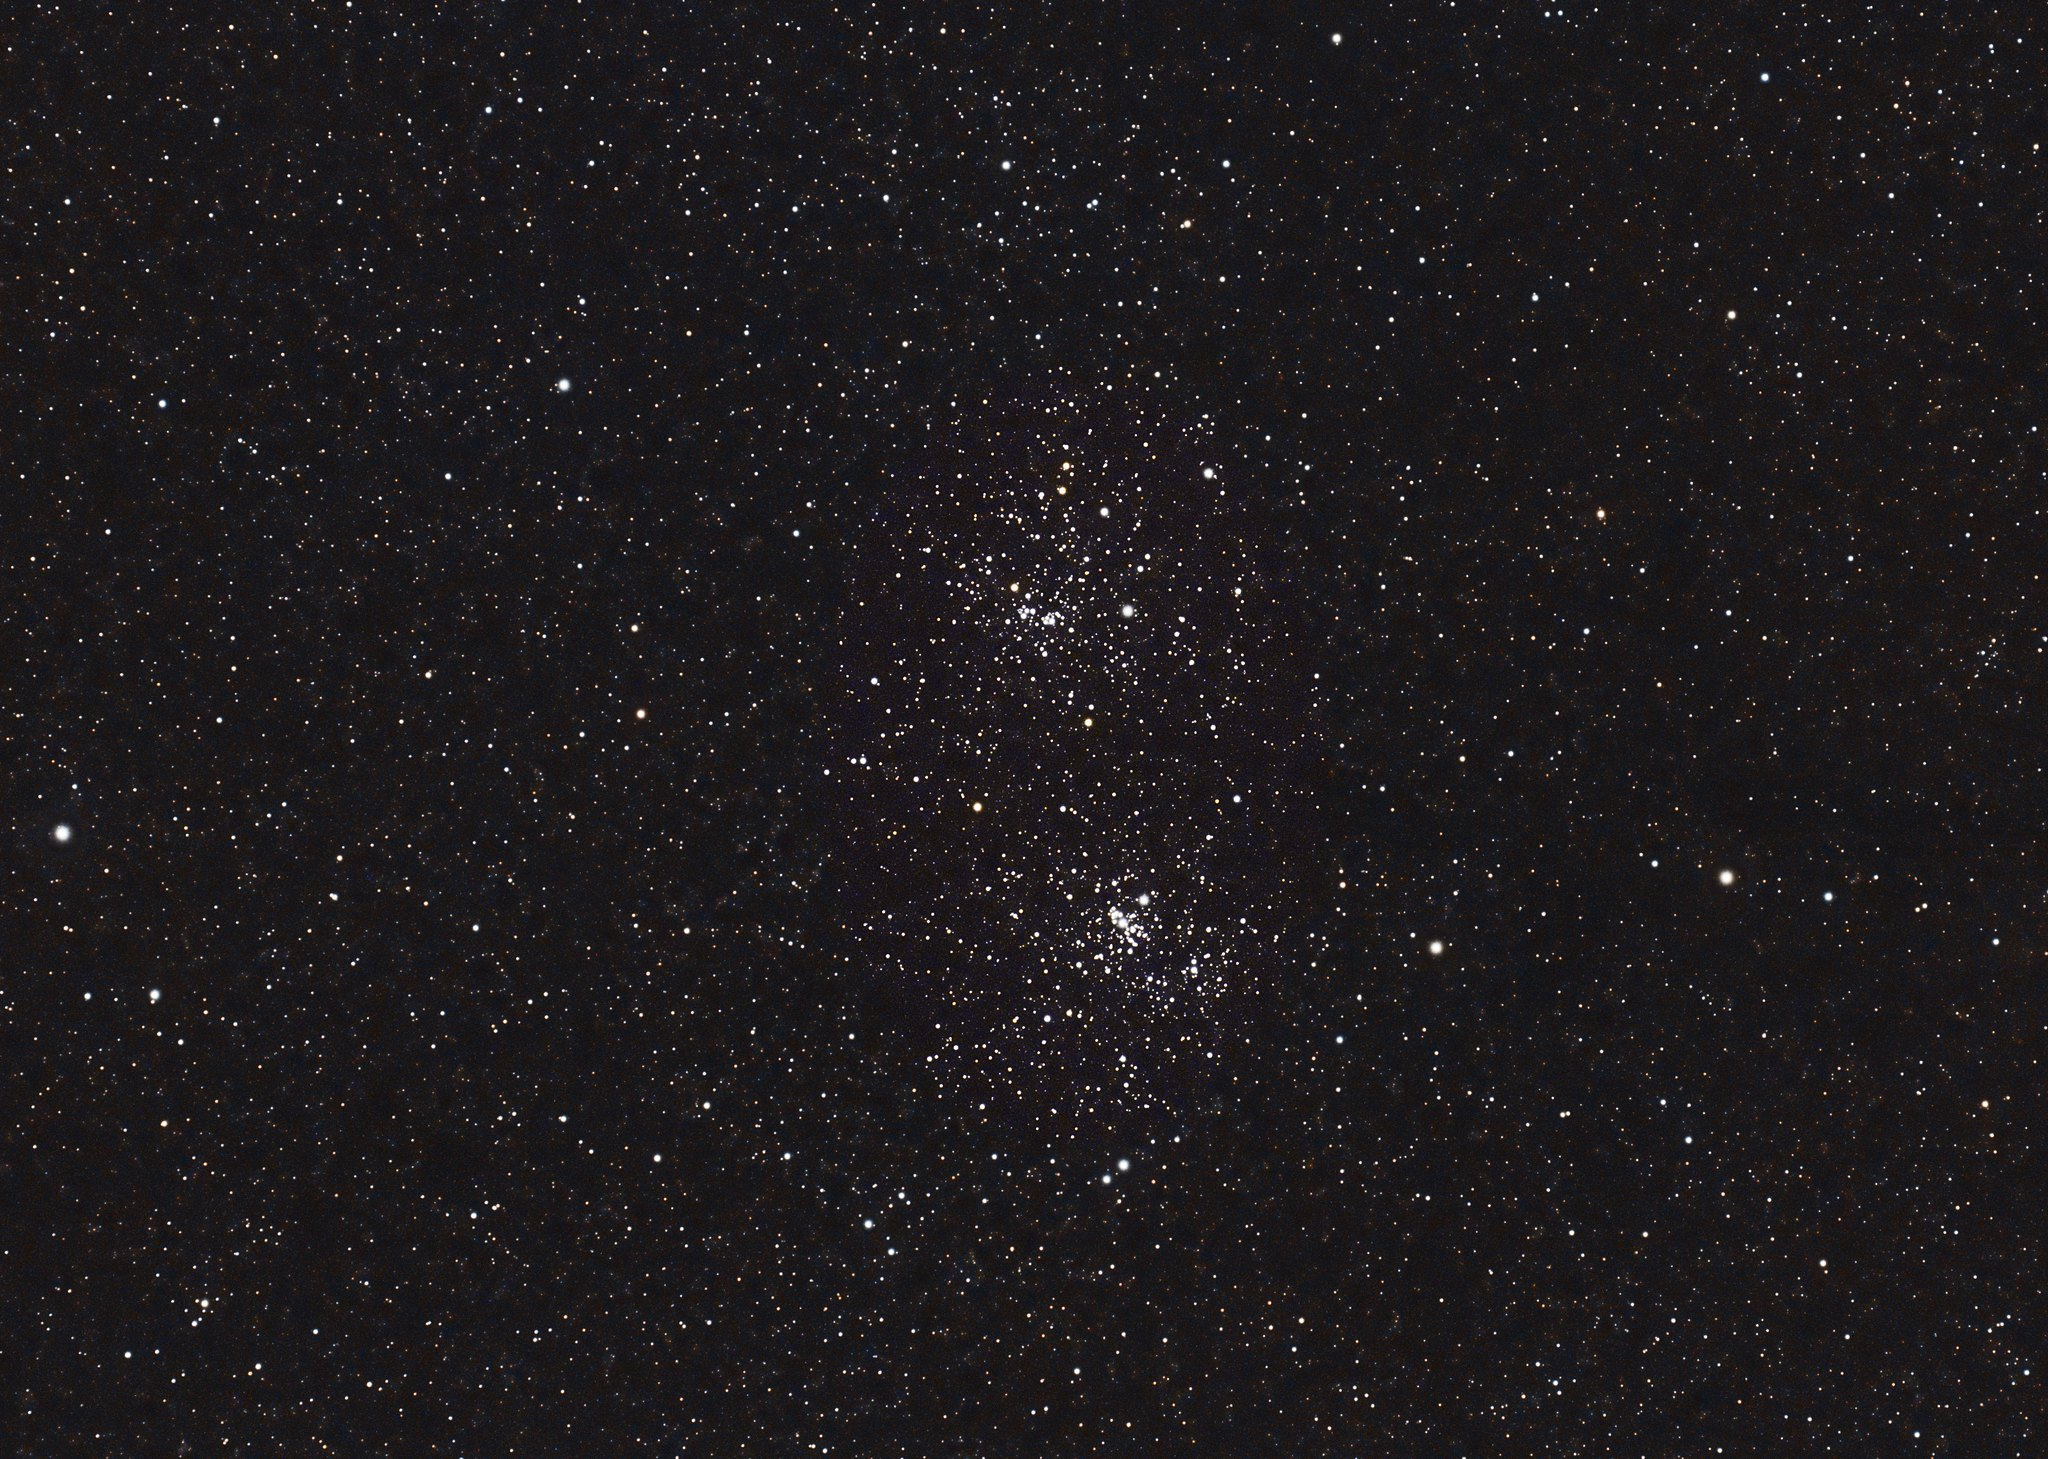 C14 Double Cluster Pat Devine Williams Optics Redcat 51 ZWO183mc pro Optolong l-pro filter